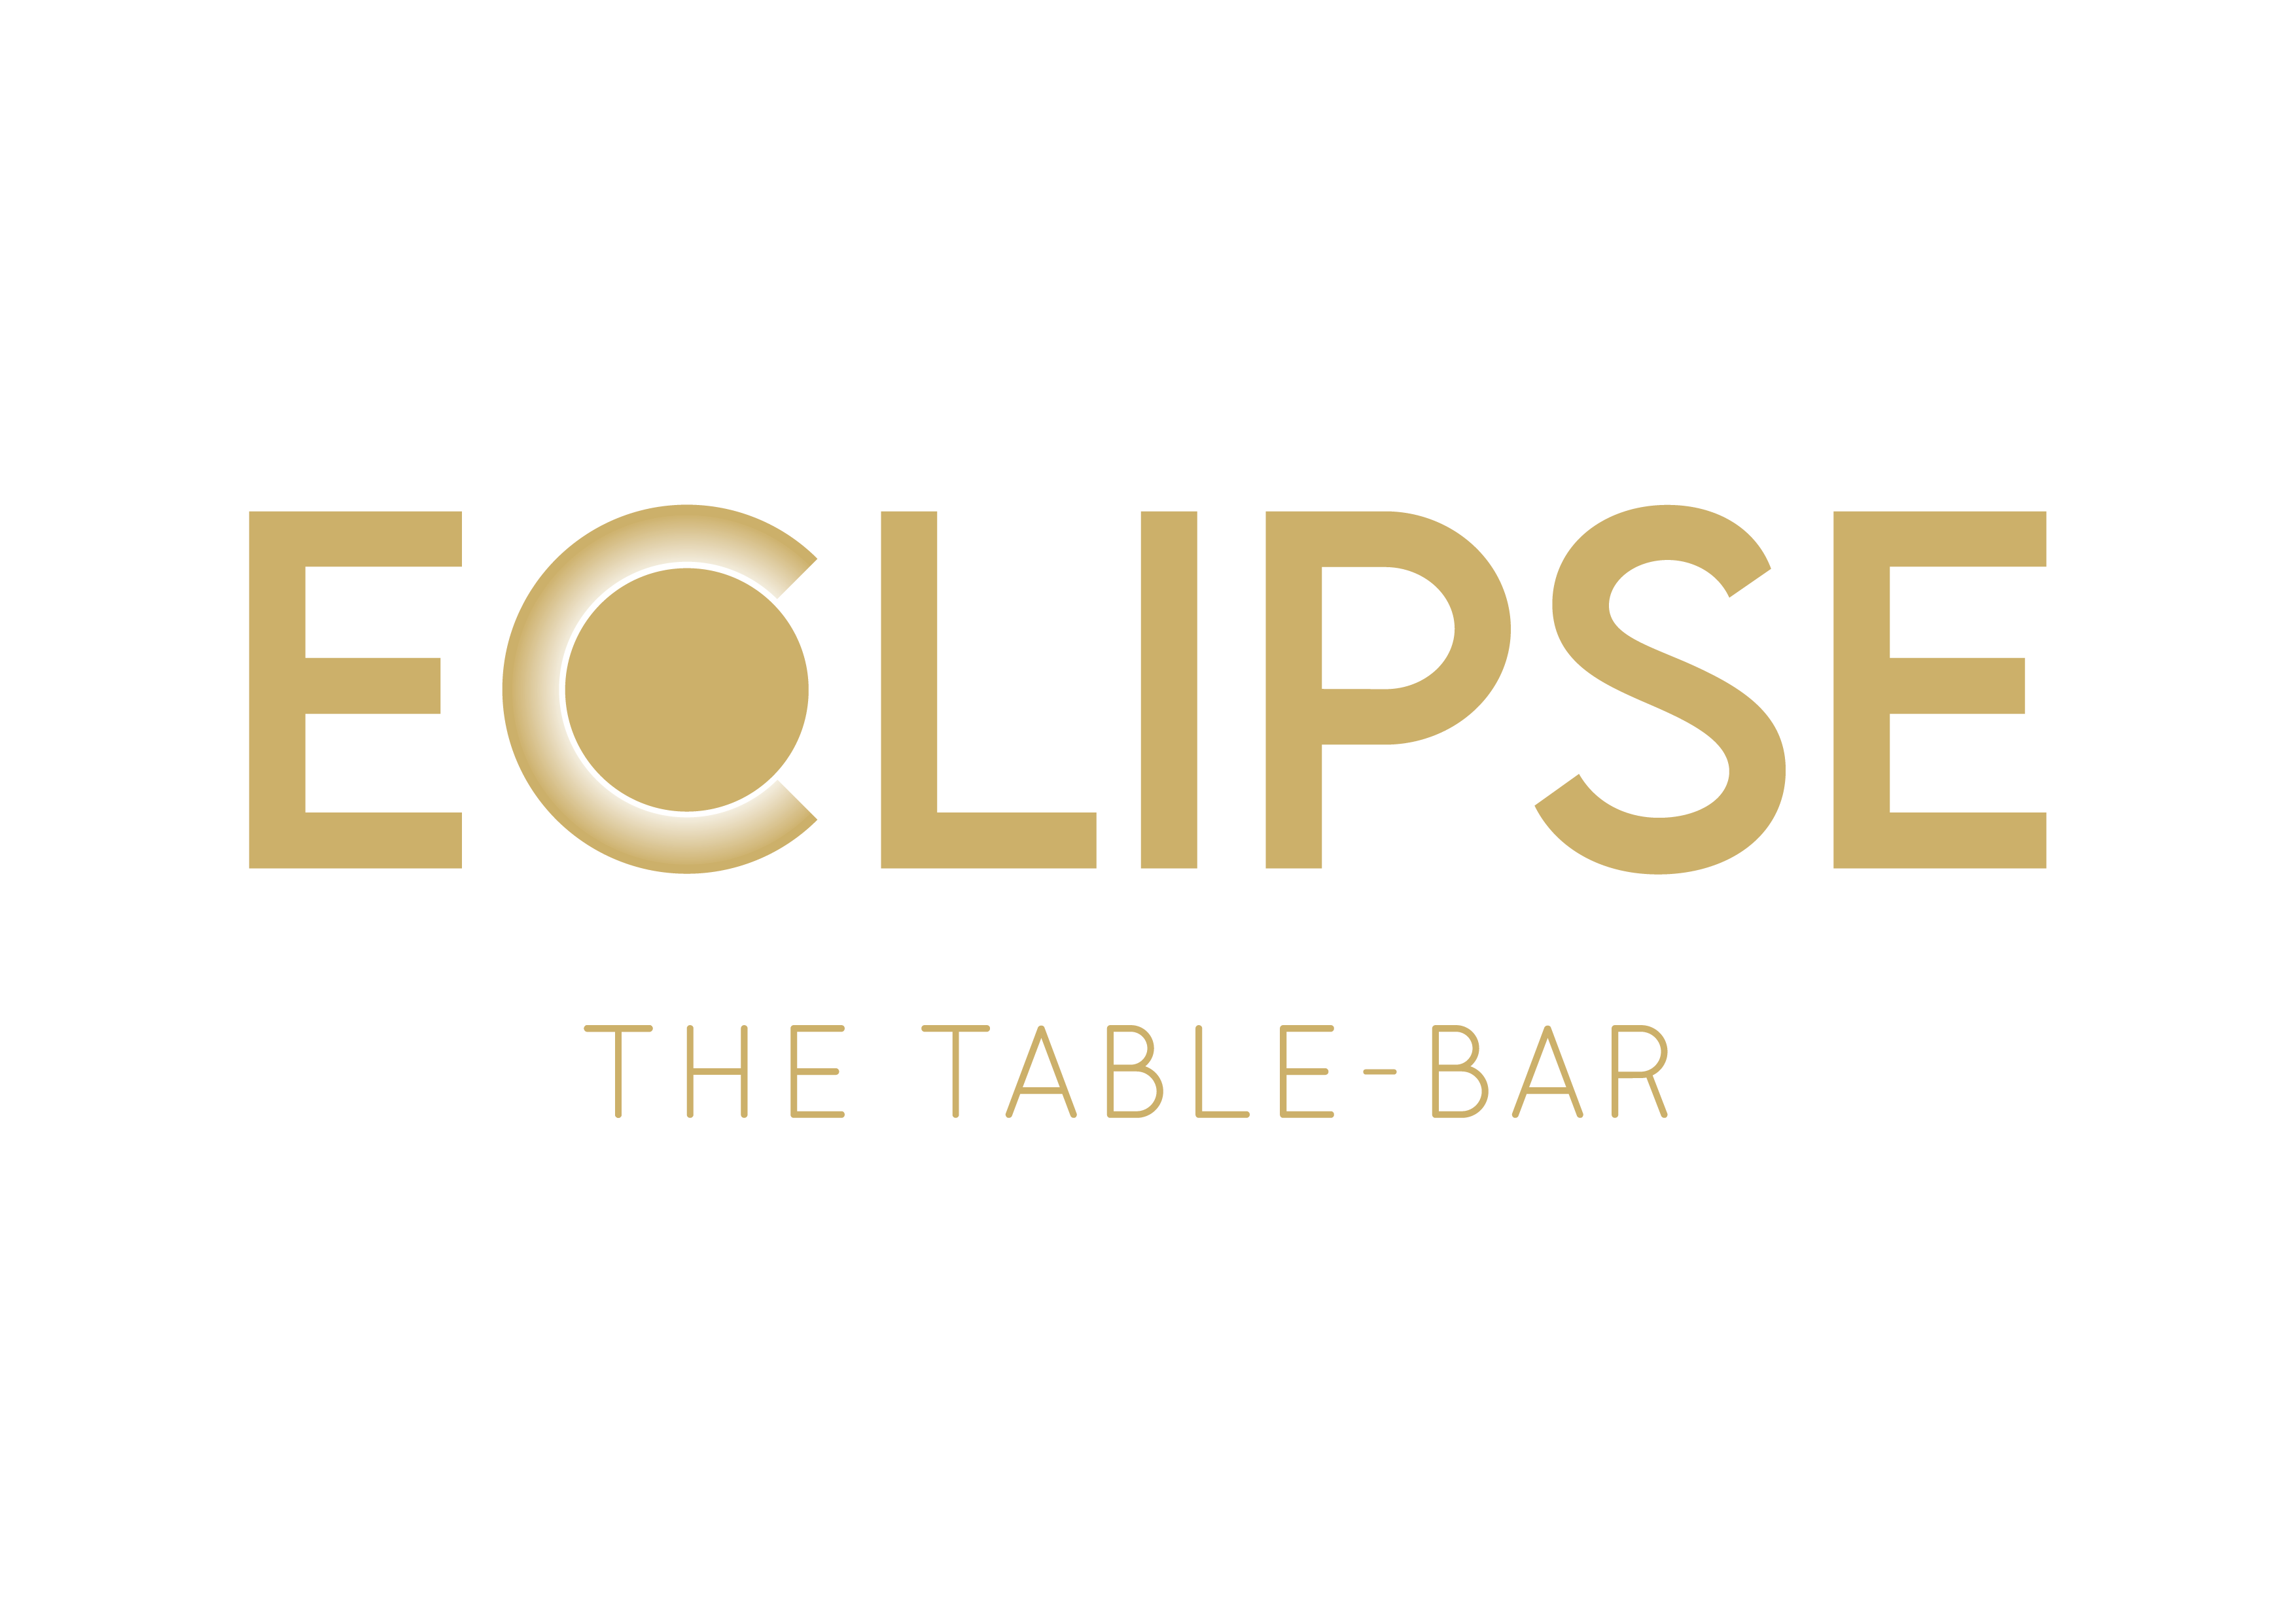 Logo Eclipse - The Table Bar